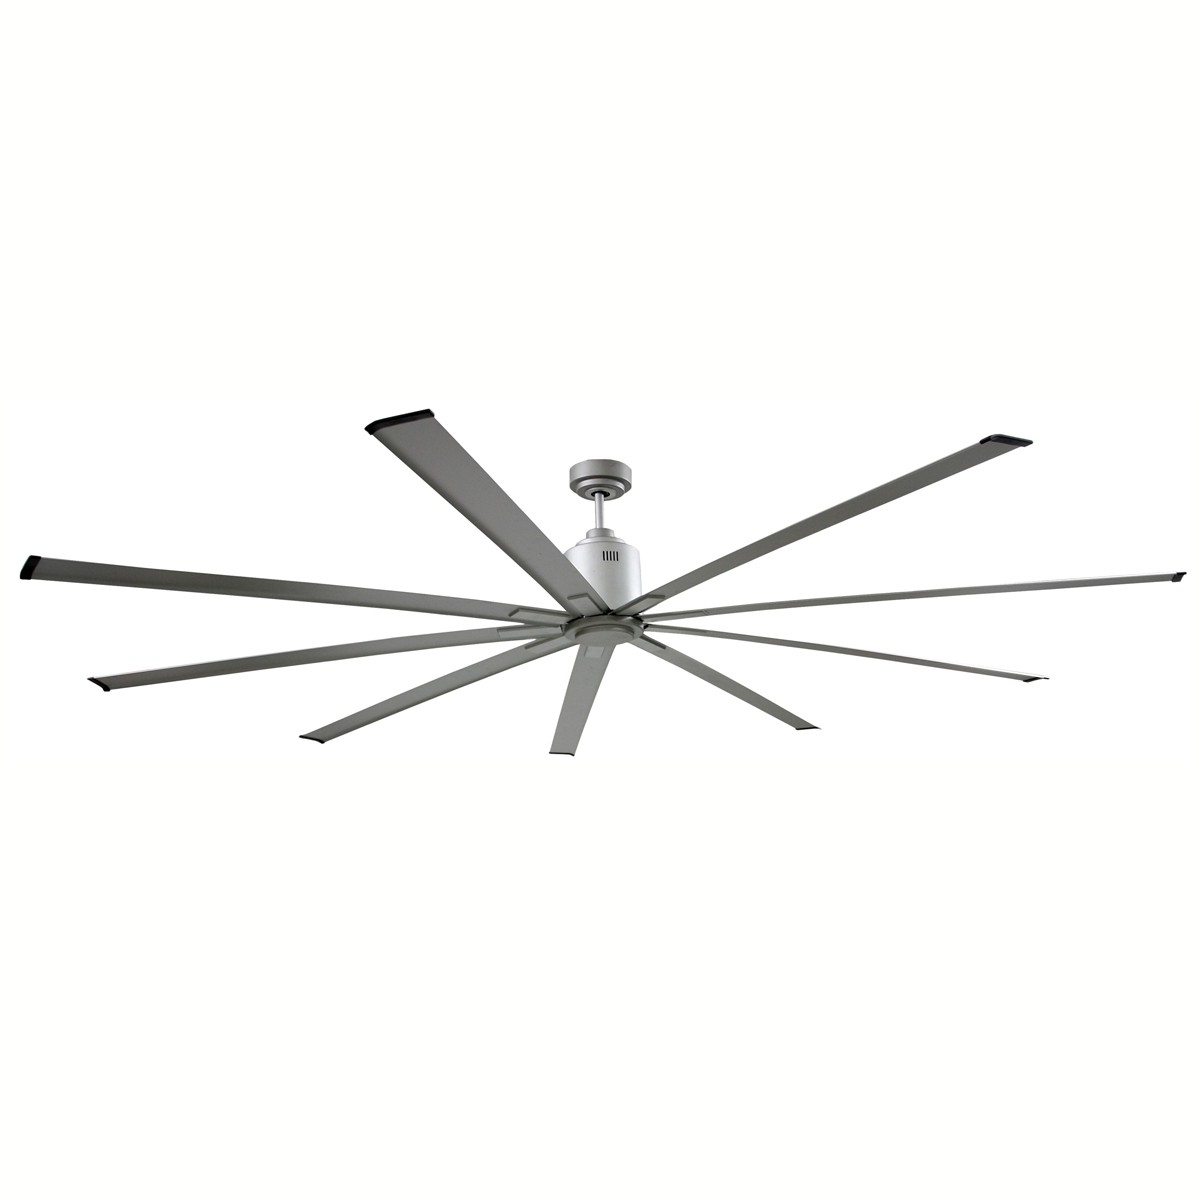 Preferred 72 Inch Outdoor Ceiling Fans Throughout 72 Inch Indoor Industrial Ceiling Fan (View 8 of 20)